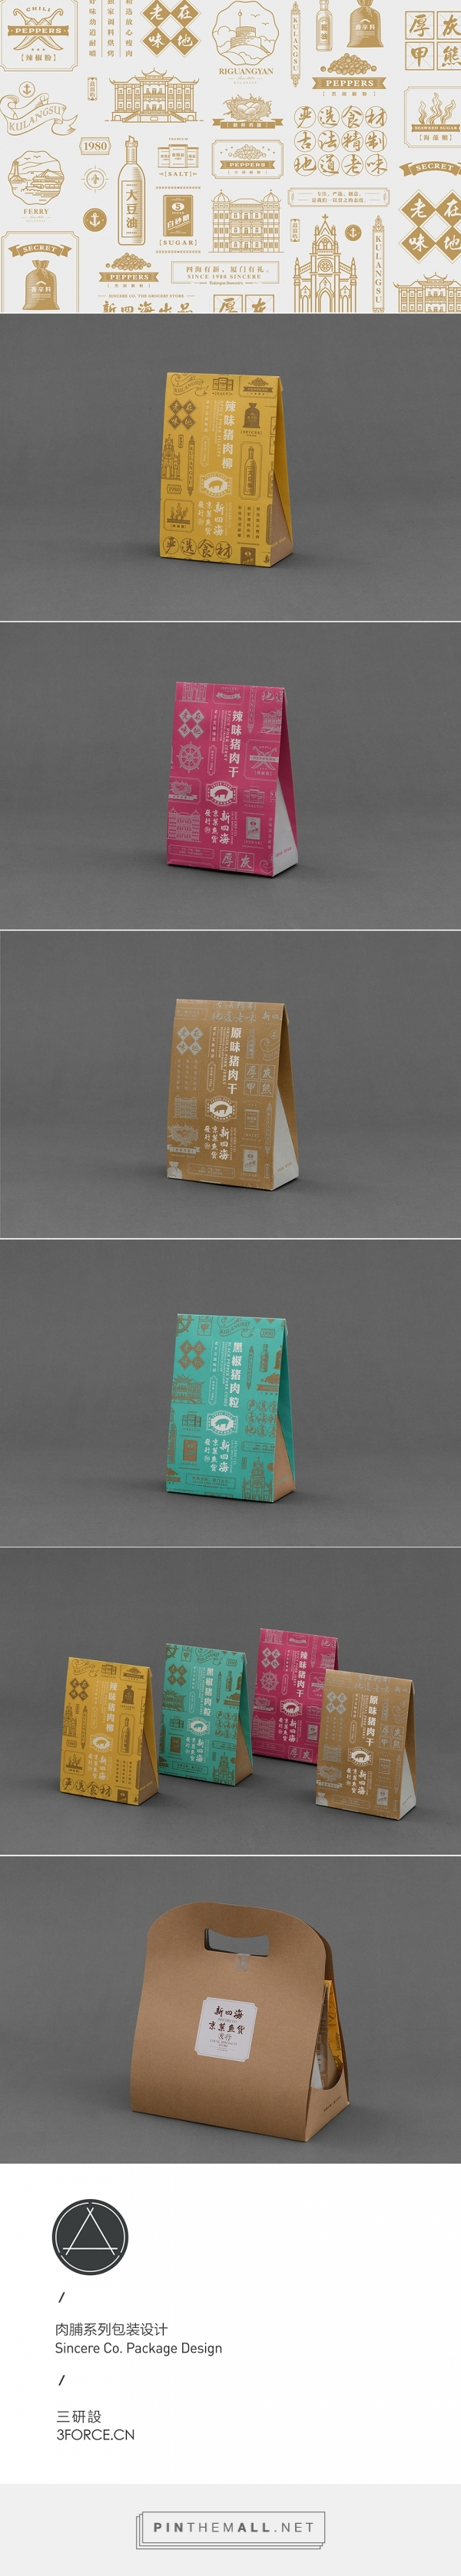 Pork Products Packaging Design by 3Force 三研设 Xiamen, China 新四海肉脯系列包装 on Behance for Sincere Co. PD